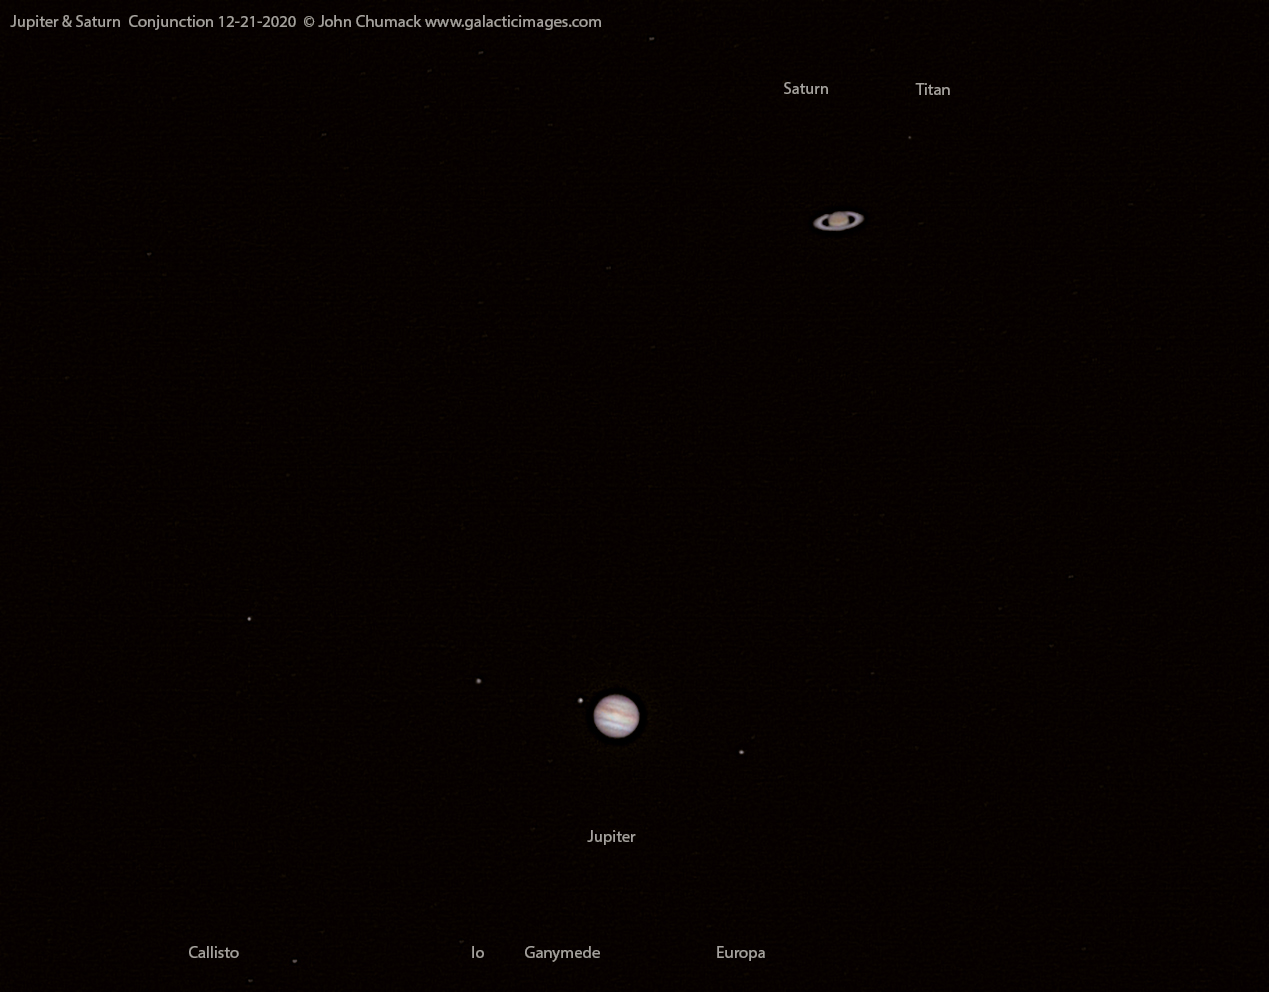 Jupiter and Saturn Conjunction on 12-20-2020 through a telescope